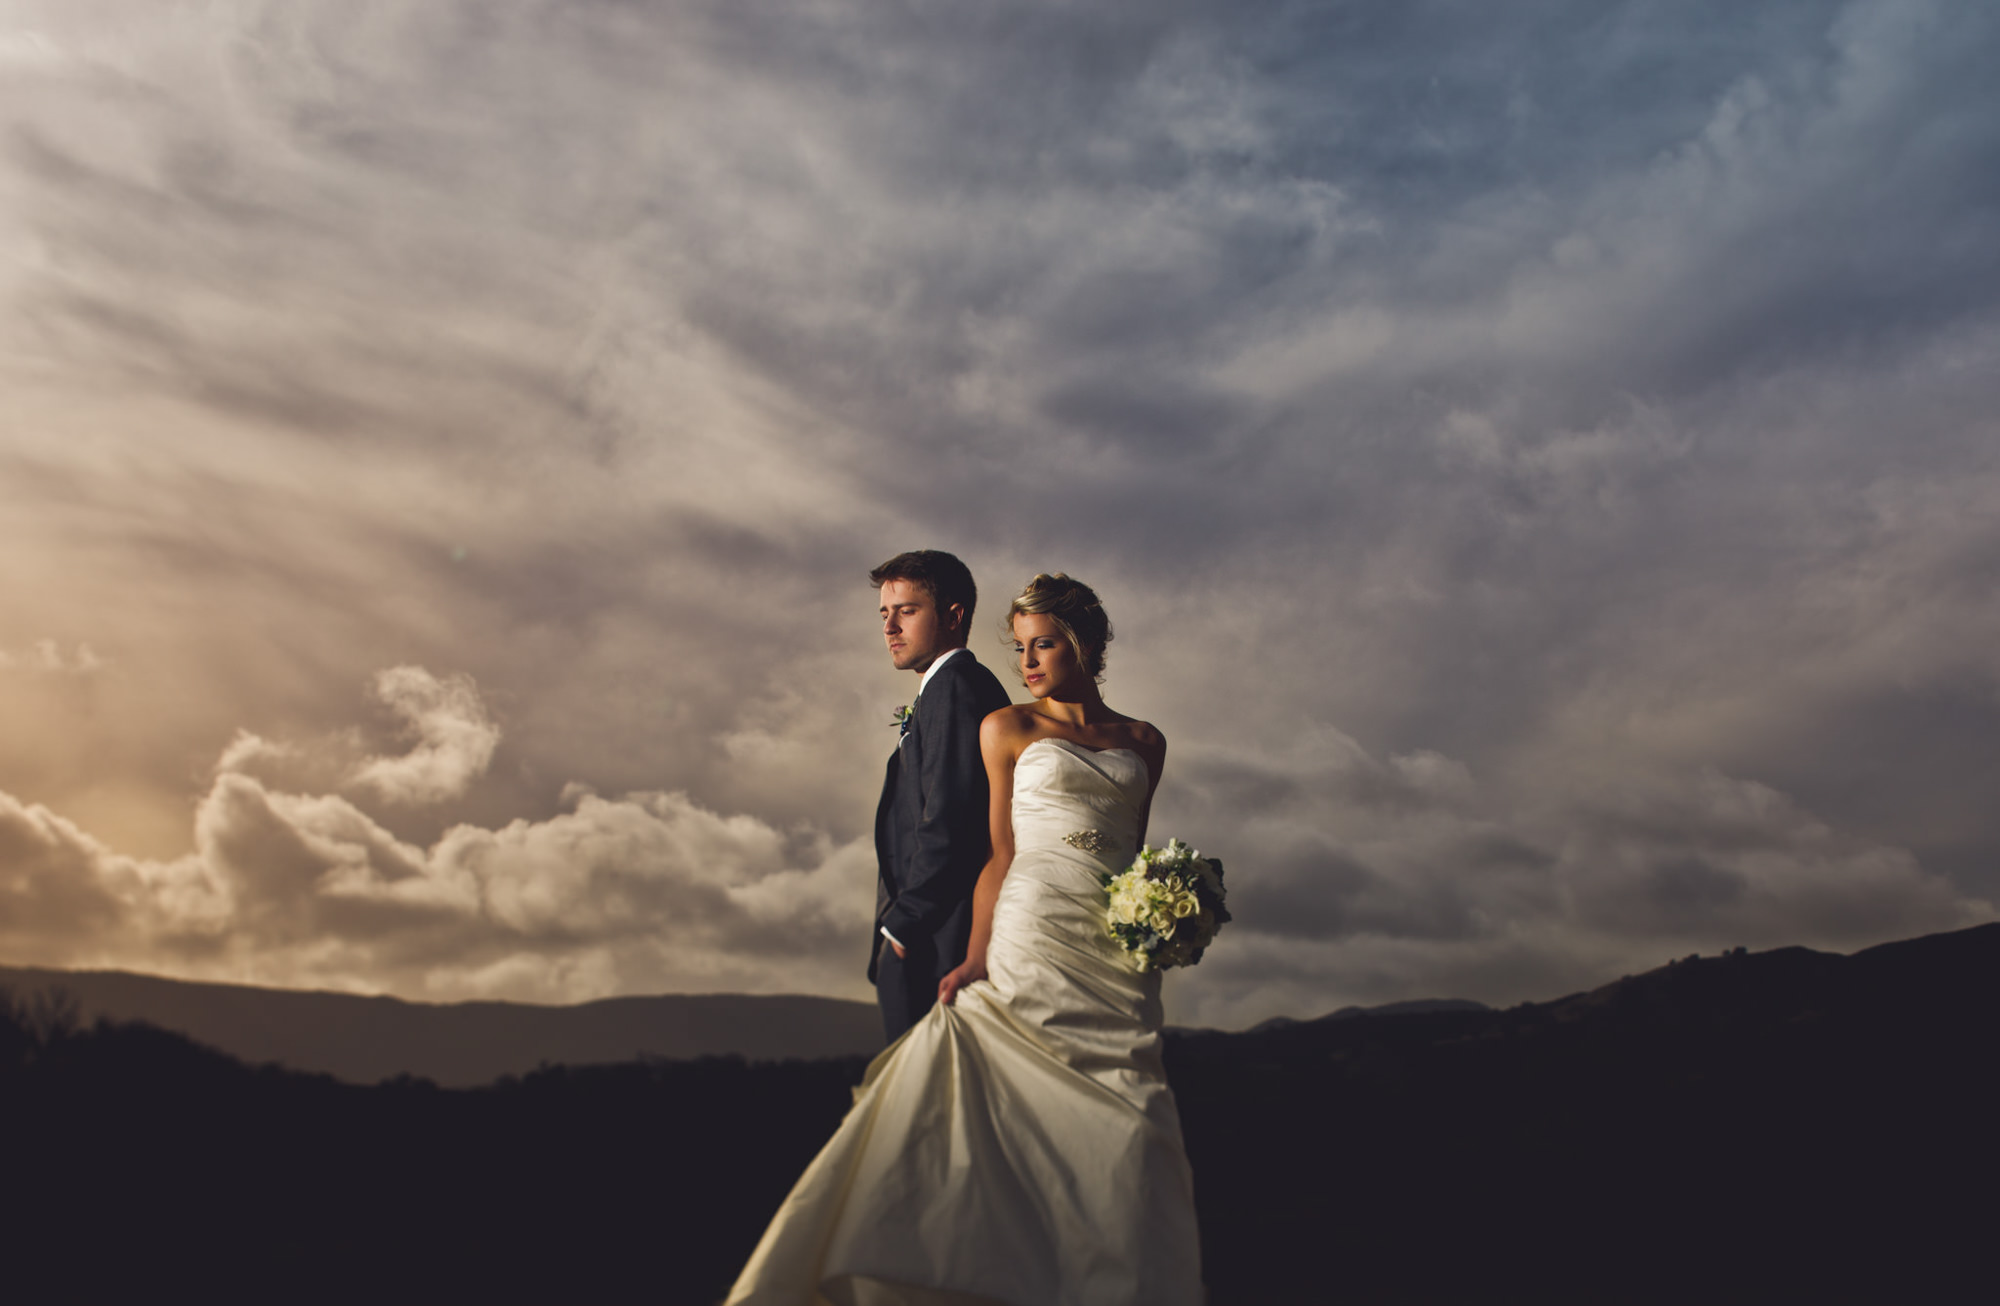 Portrait of bride and groom against dusk sky, by Jeff Newsom